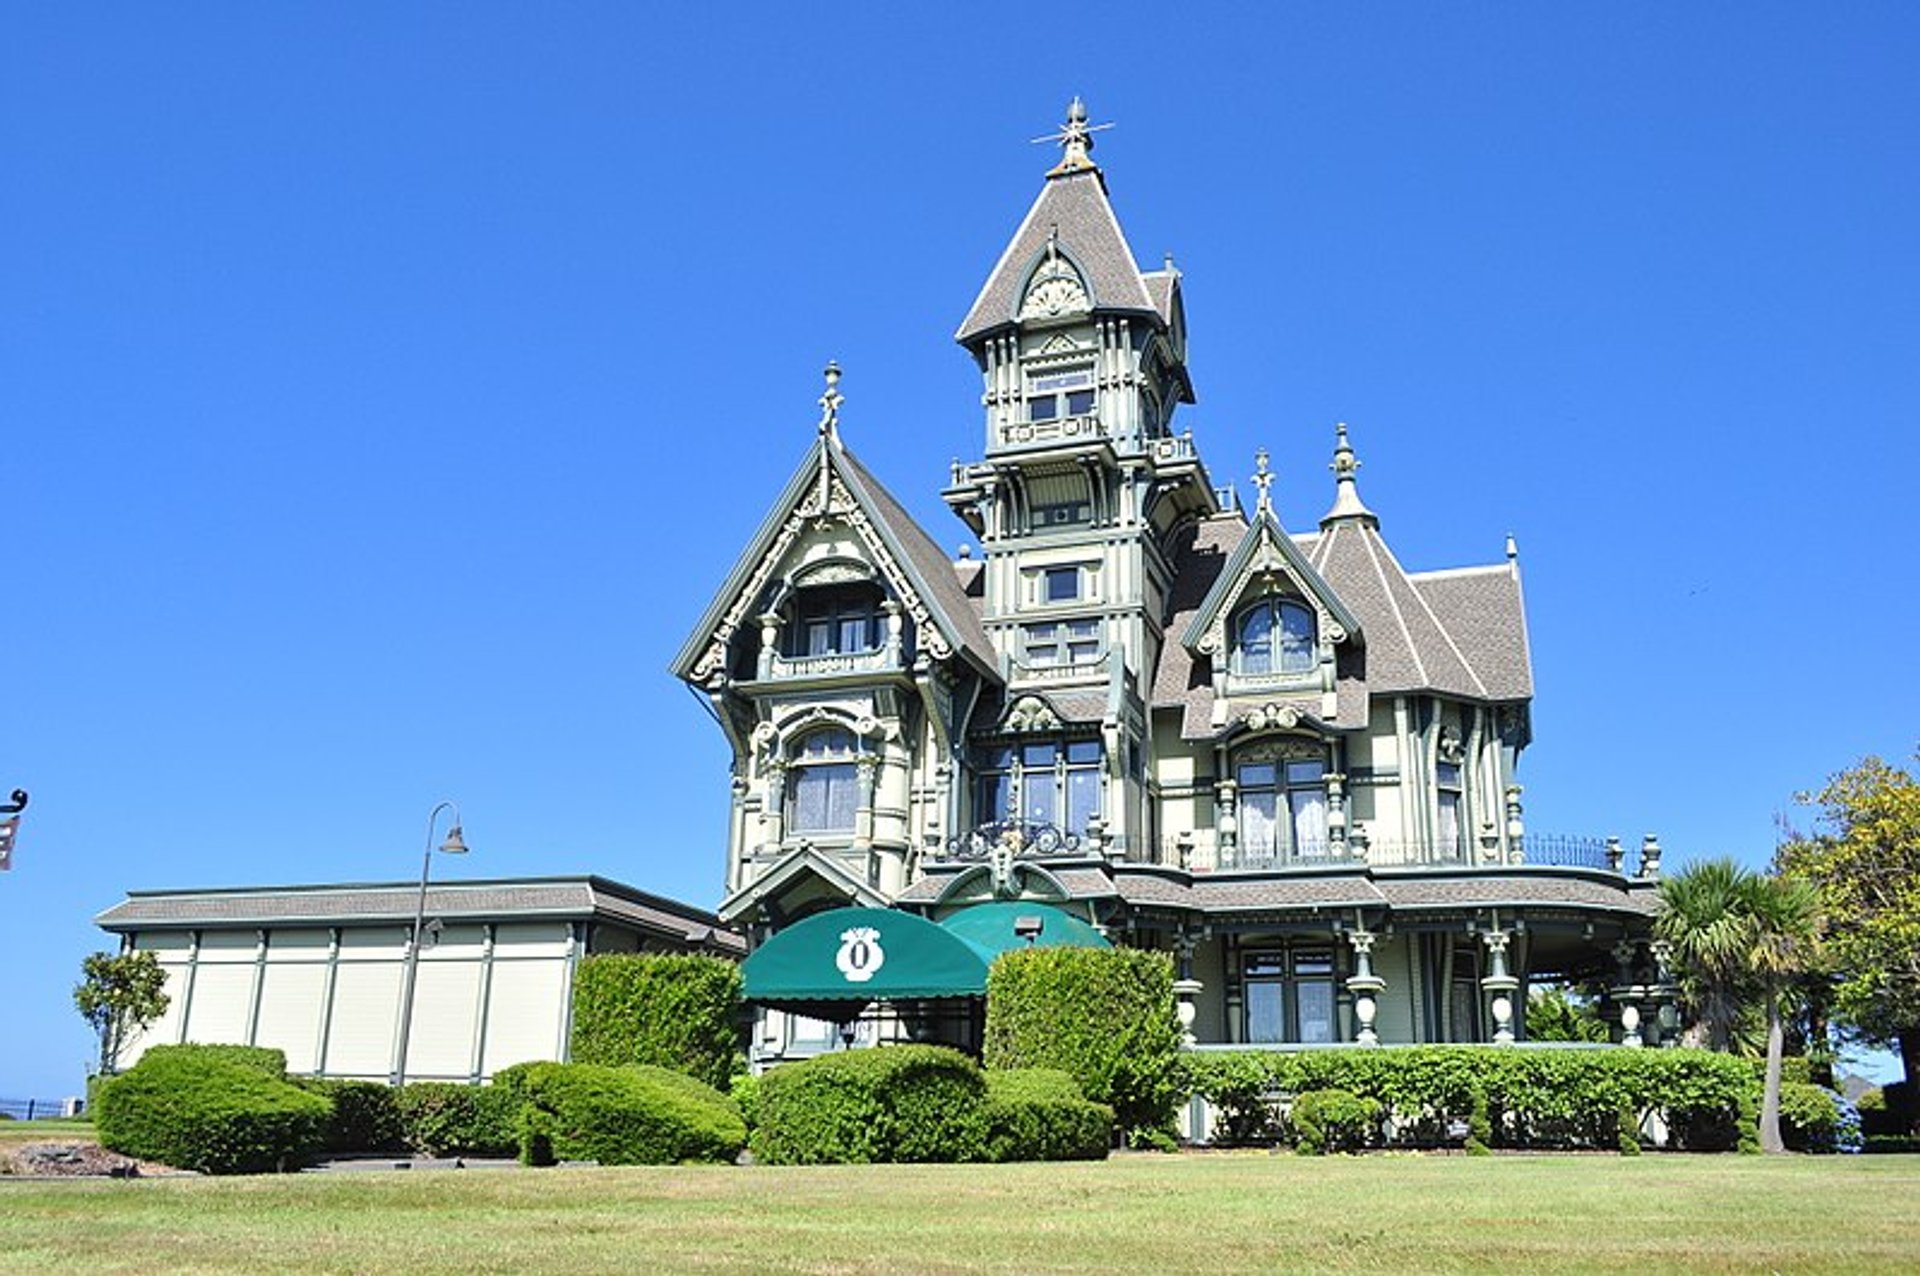 Carson Mansion in California 2019 - Best Time